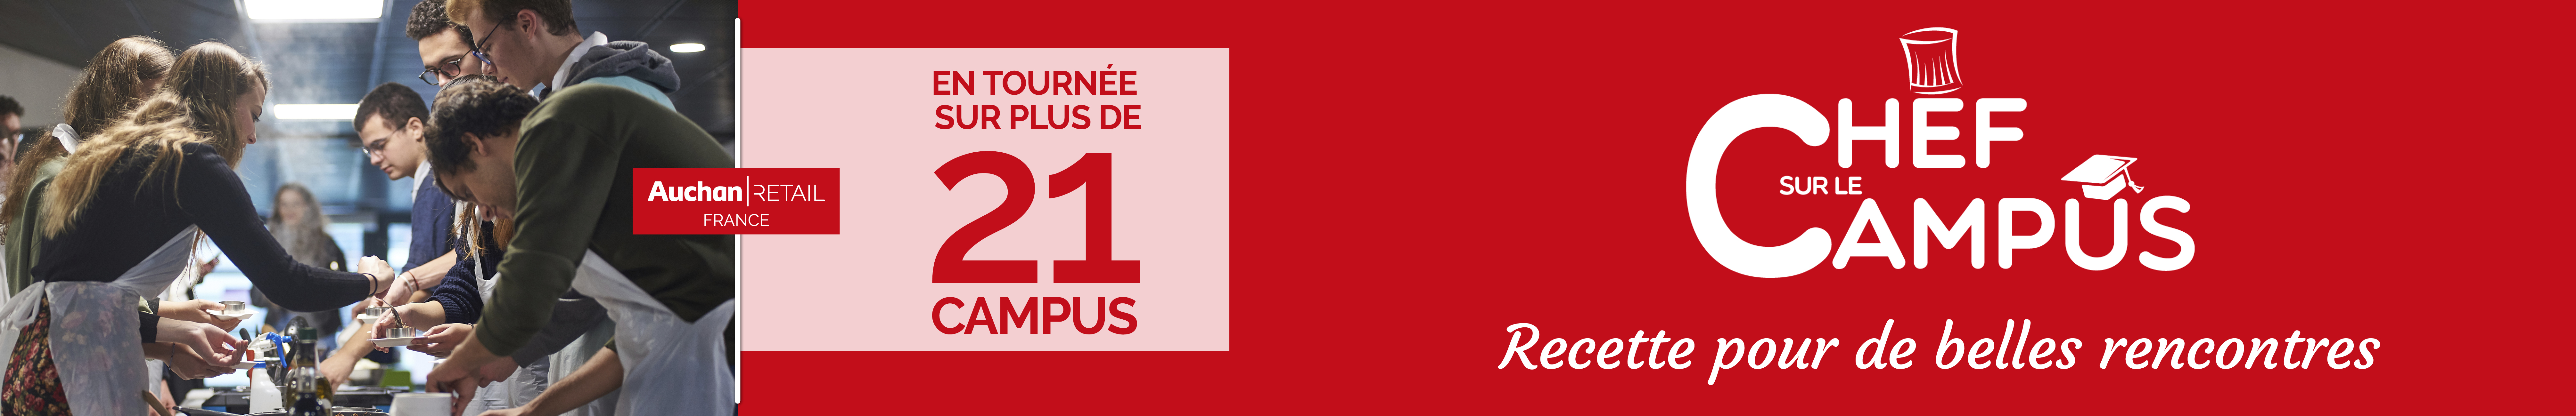 reliable quality various design on wholesale Offre Auchan Retail France - Manager Caisses H/F